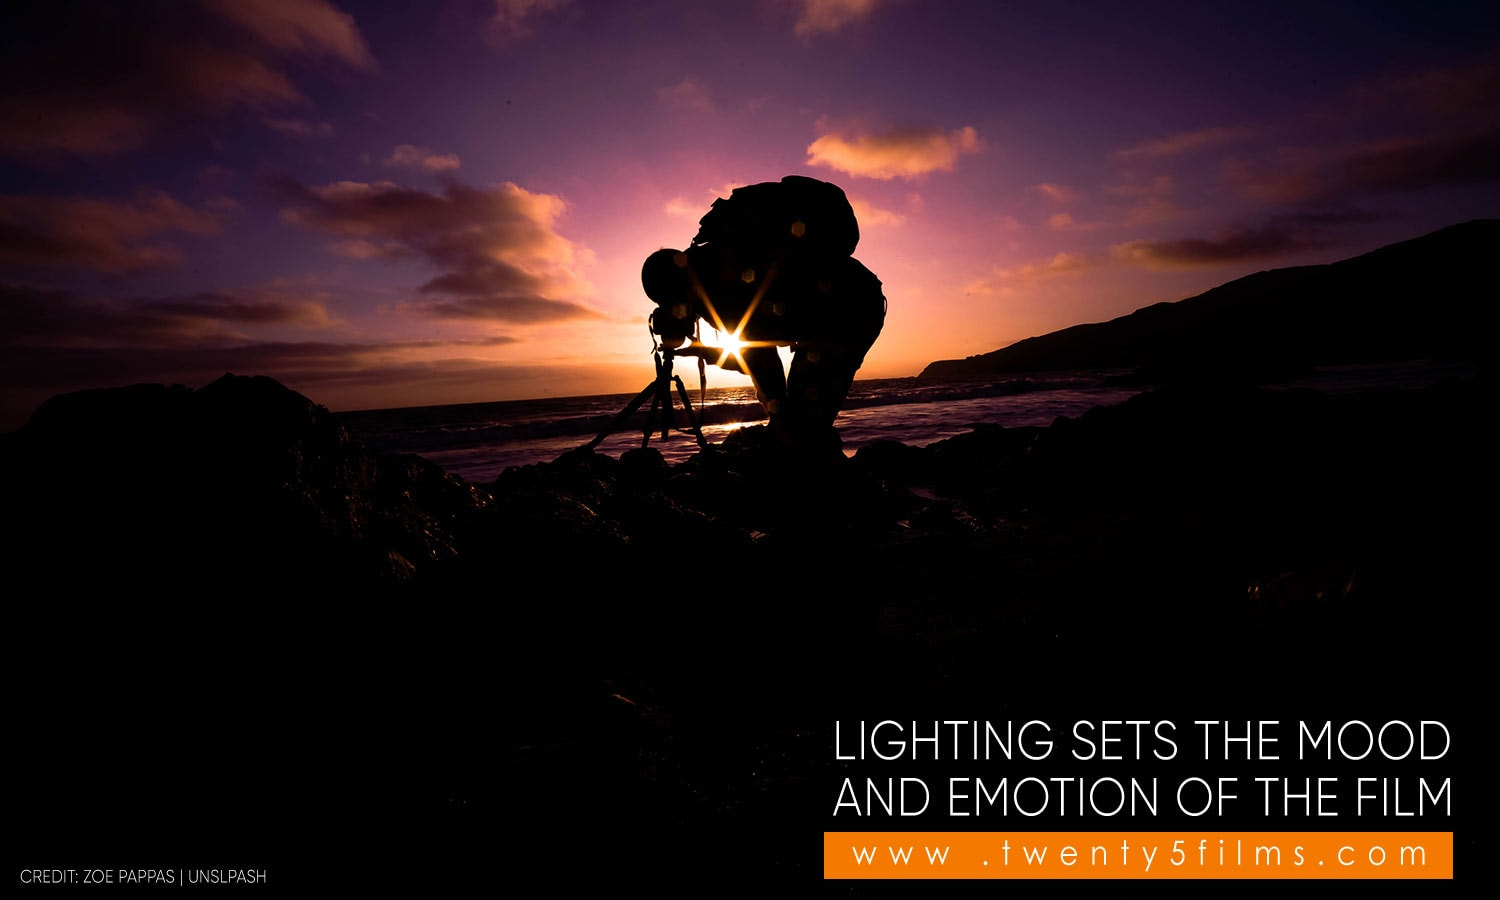 Lighting sets the mood and emotion of the film